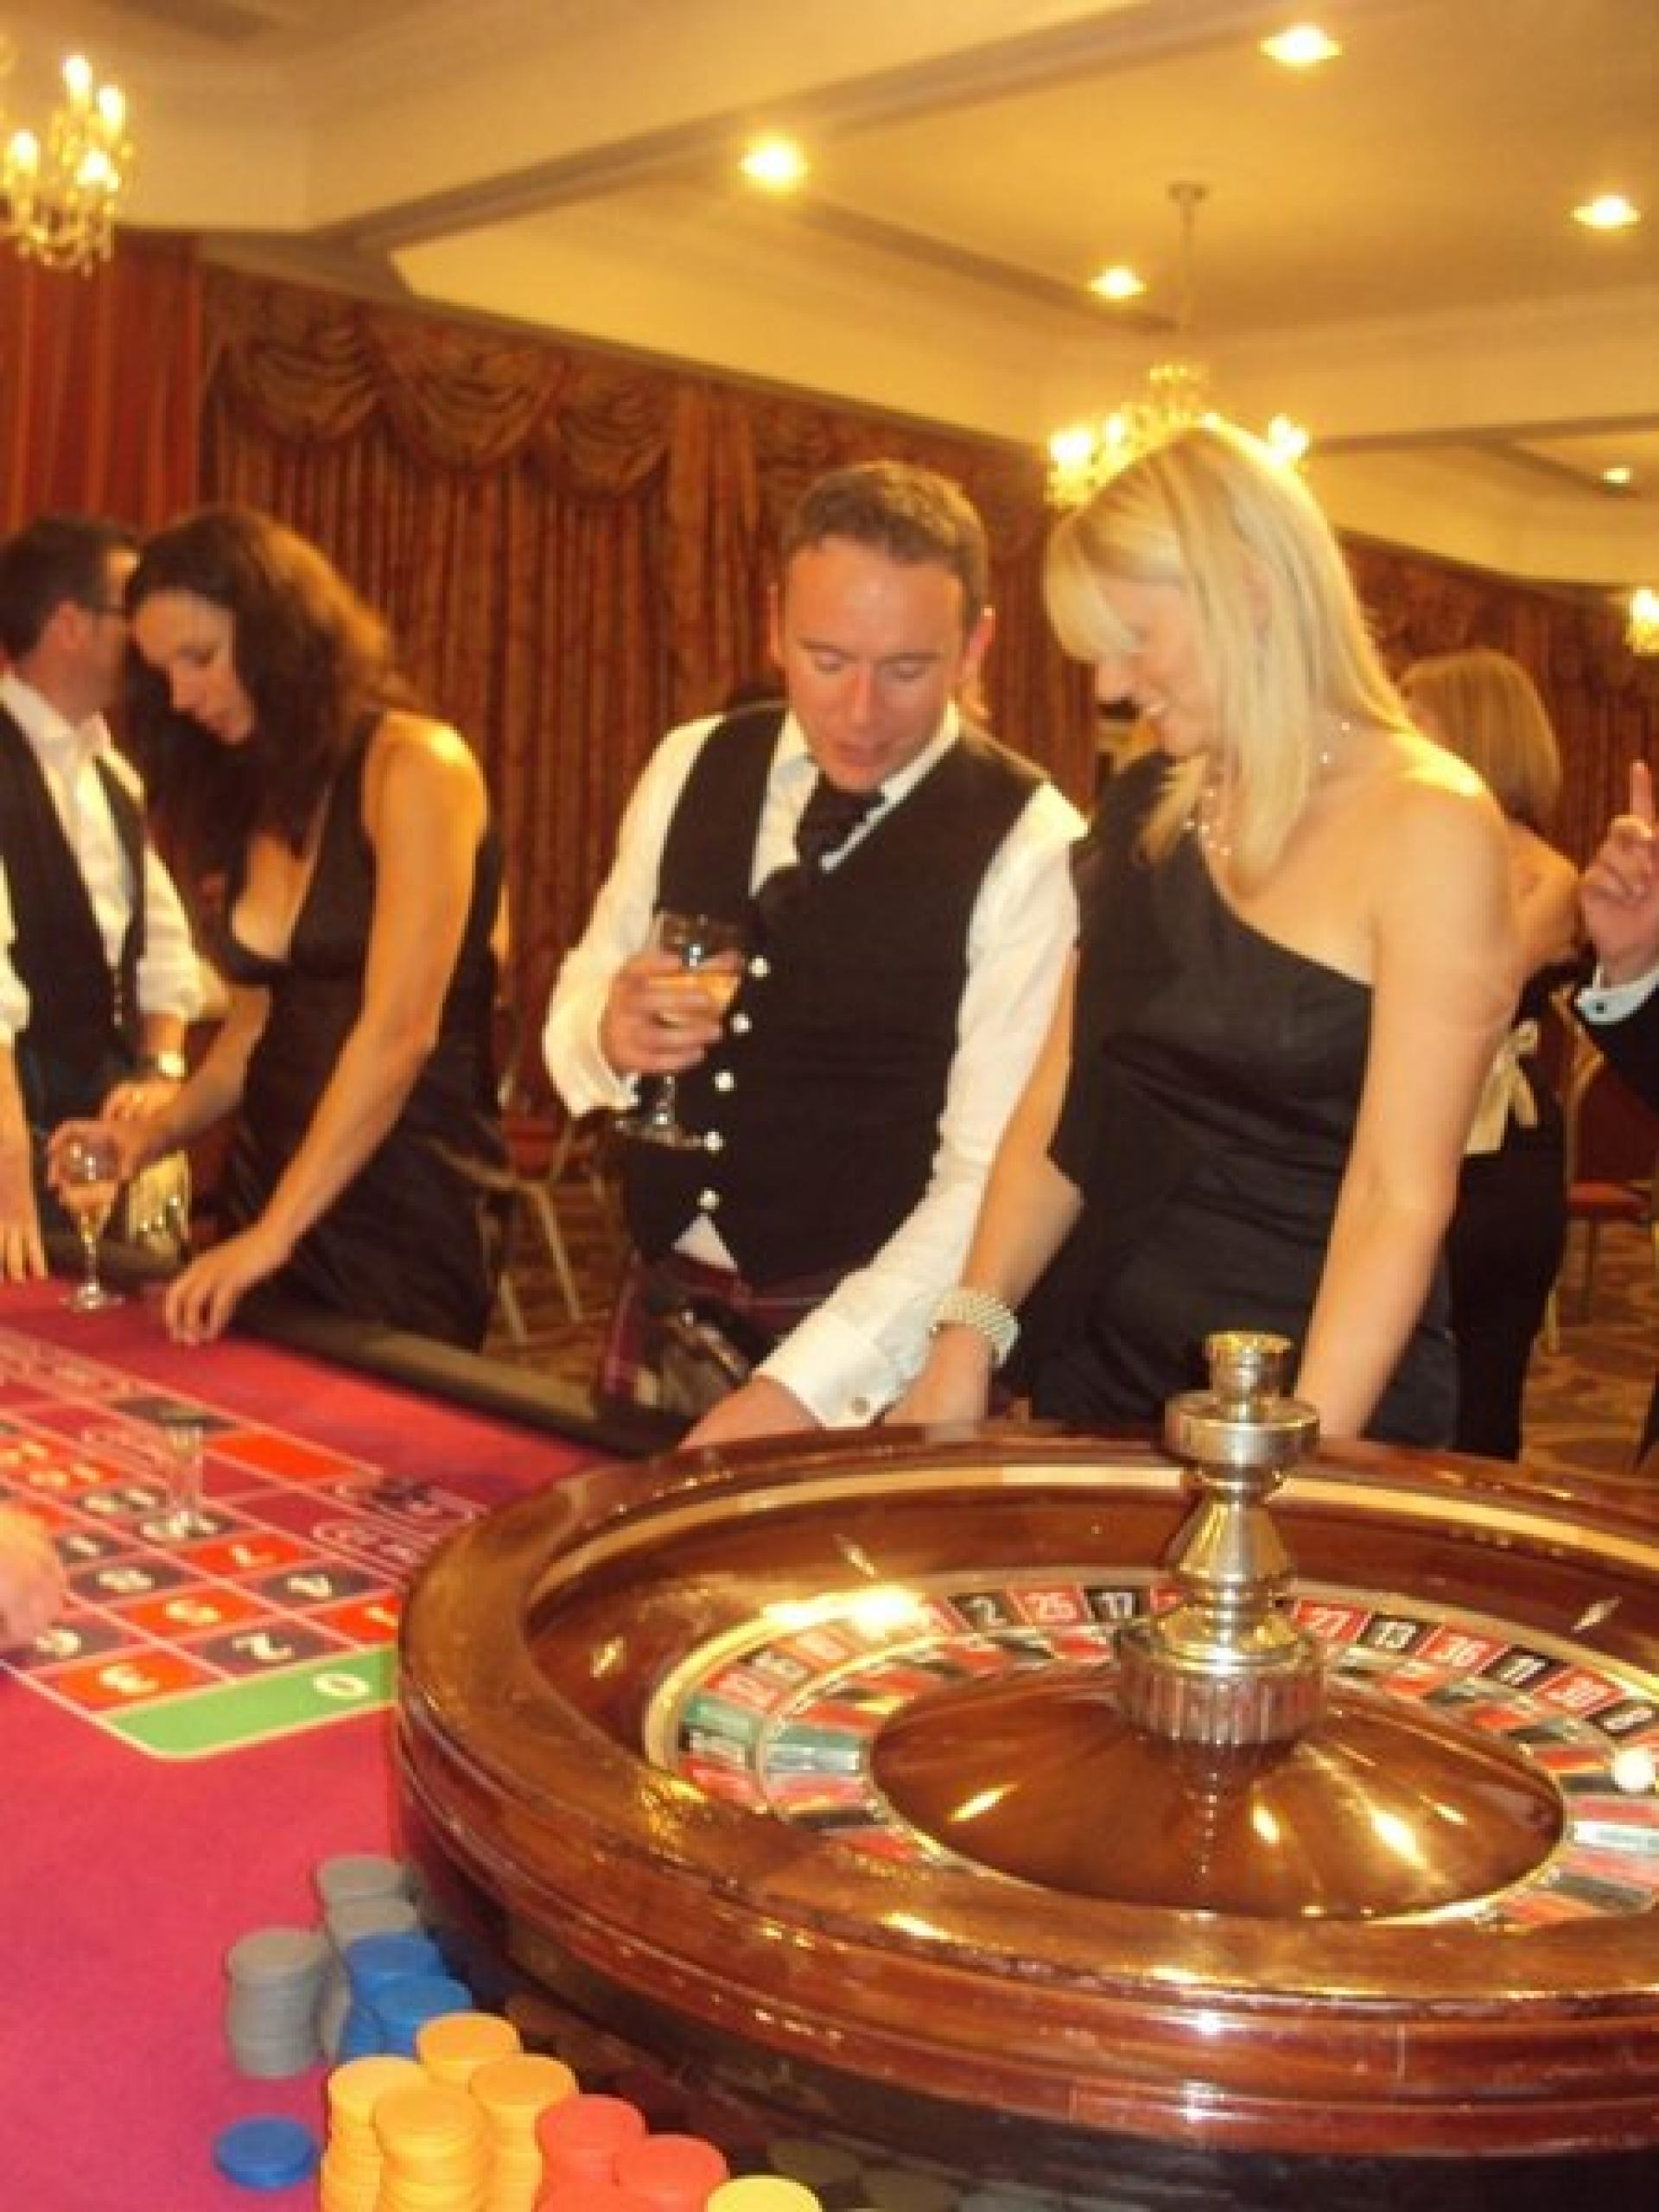 Evening Entertainment Fun Casino Aberdeen July 11